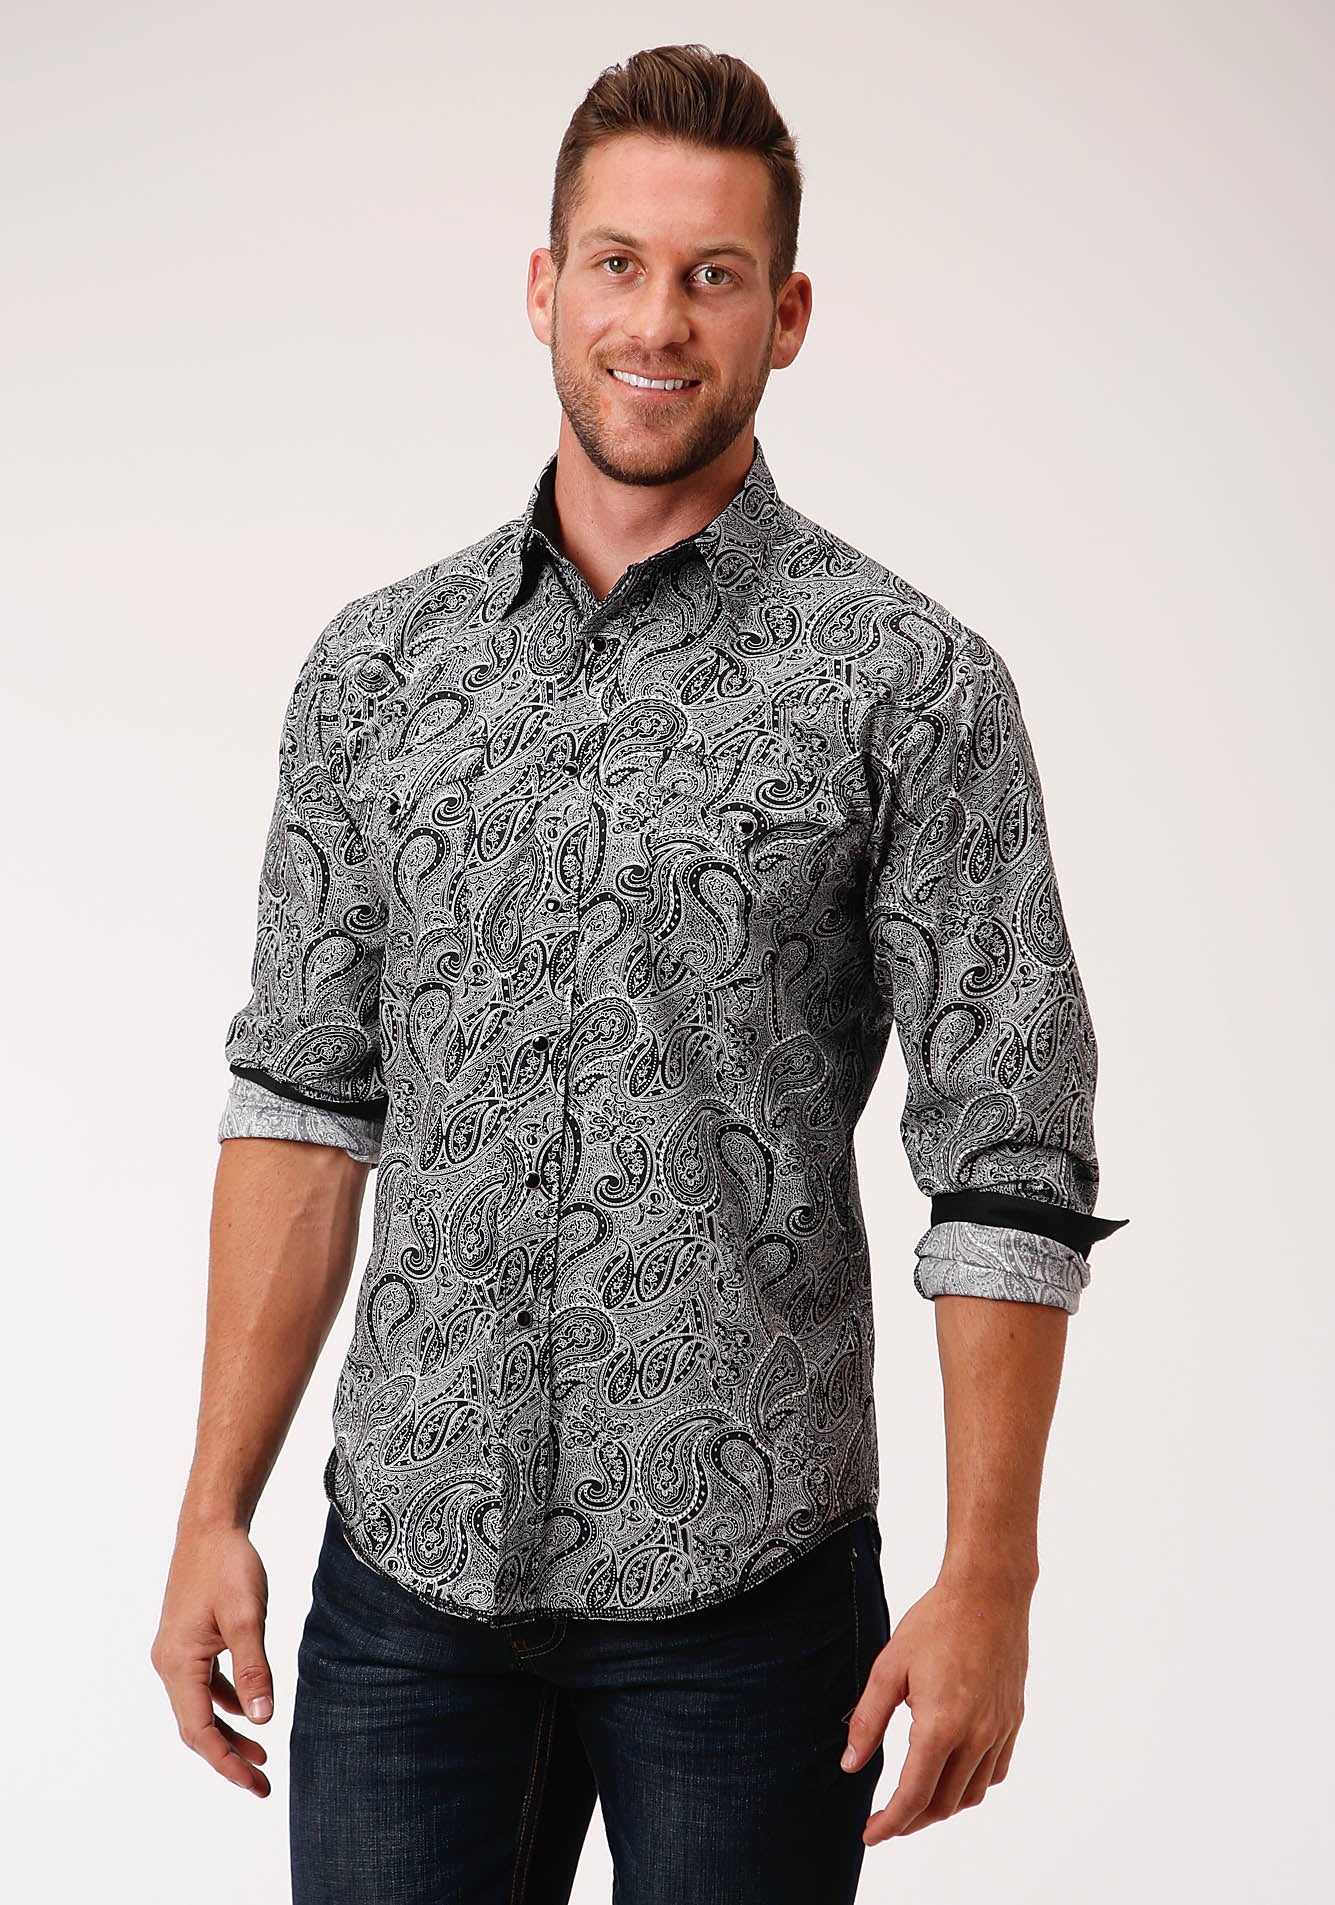 ROPER MENS BLACK 00186 BLACK PAISLEY WEST MADE COLLECTION LONG SLEEVE